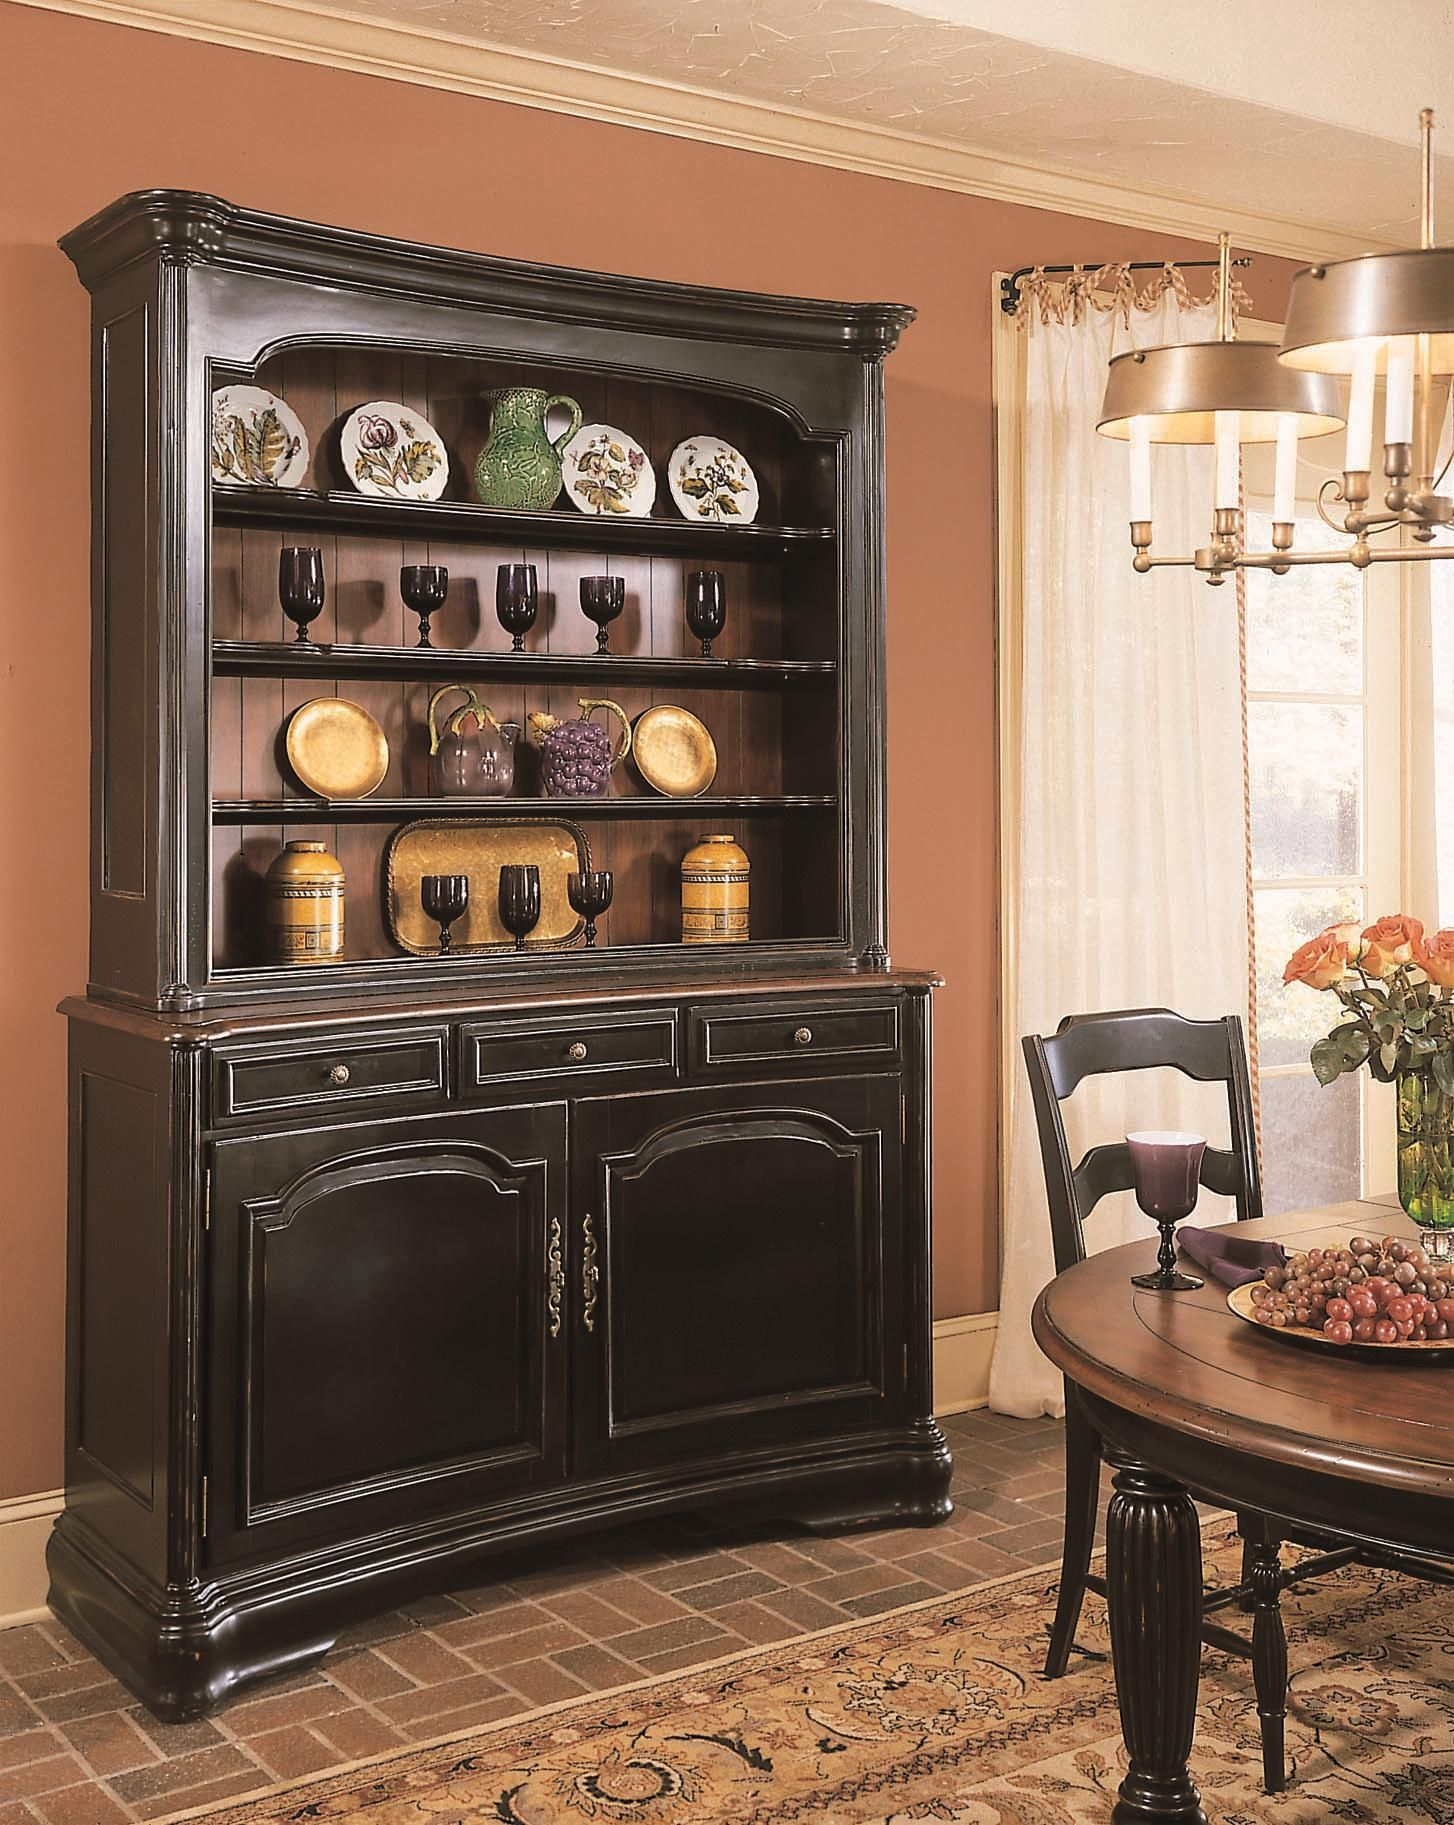 Perfect Duo Tone Finish For My Kitchen Hutch Hooker Furniture Inspiration Black China CabinetsDining Room HutchDining RoomsDistressed